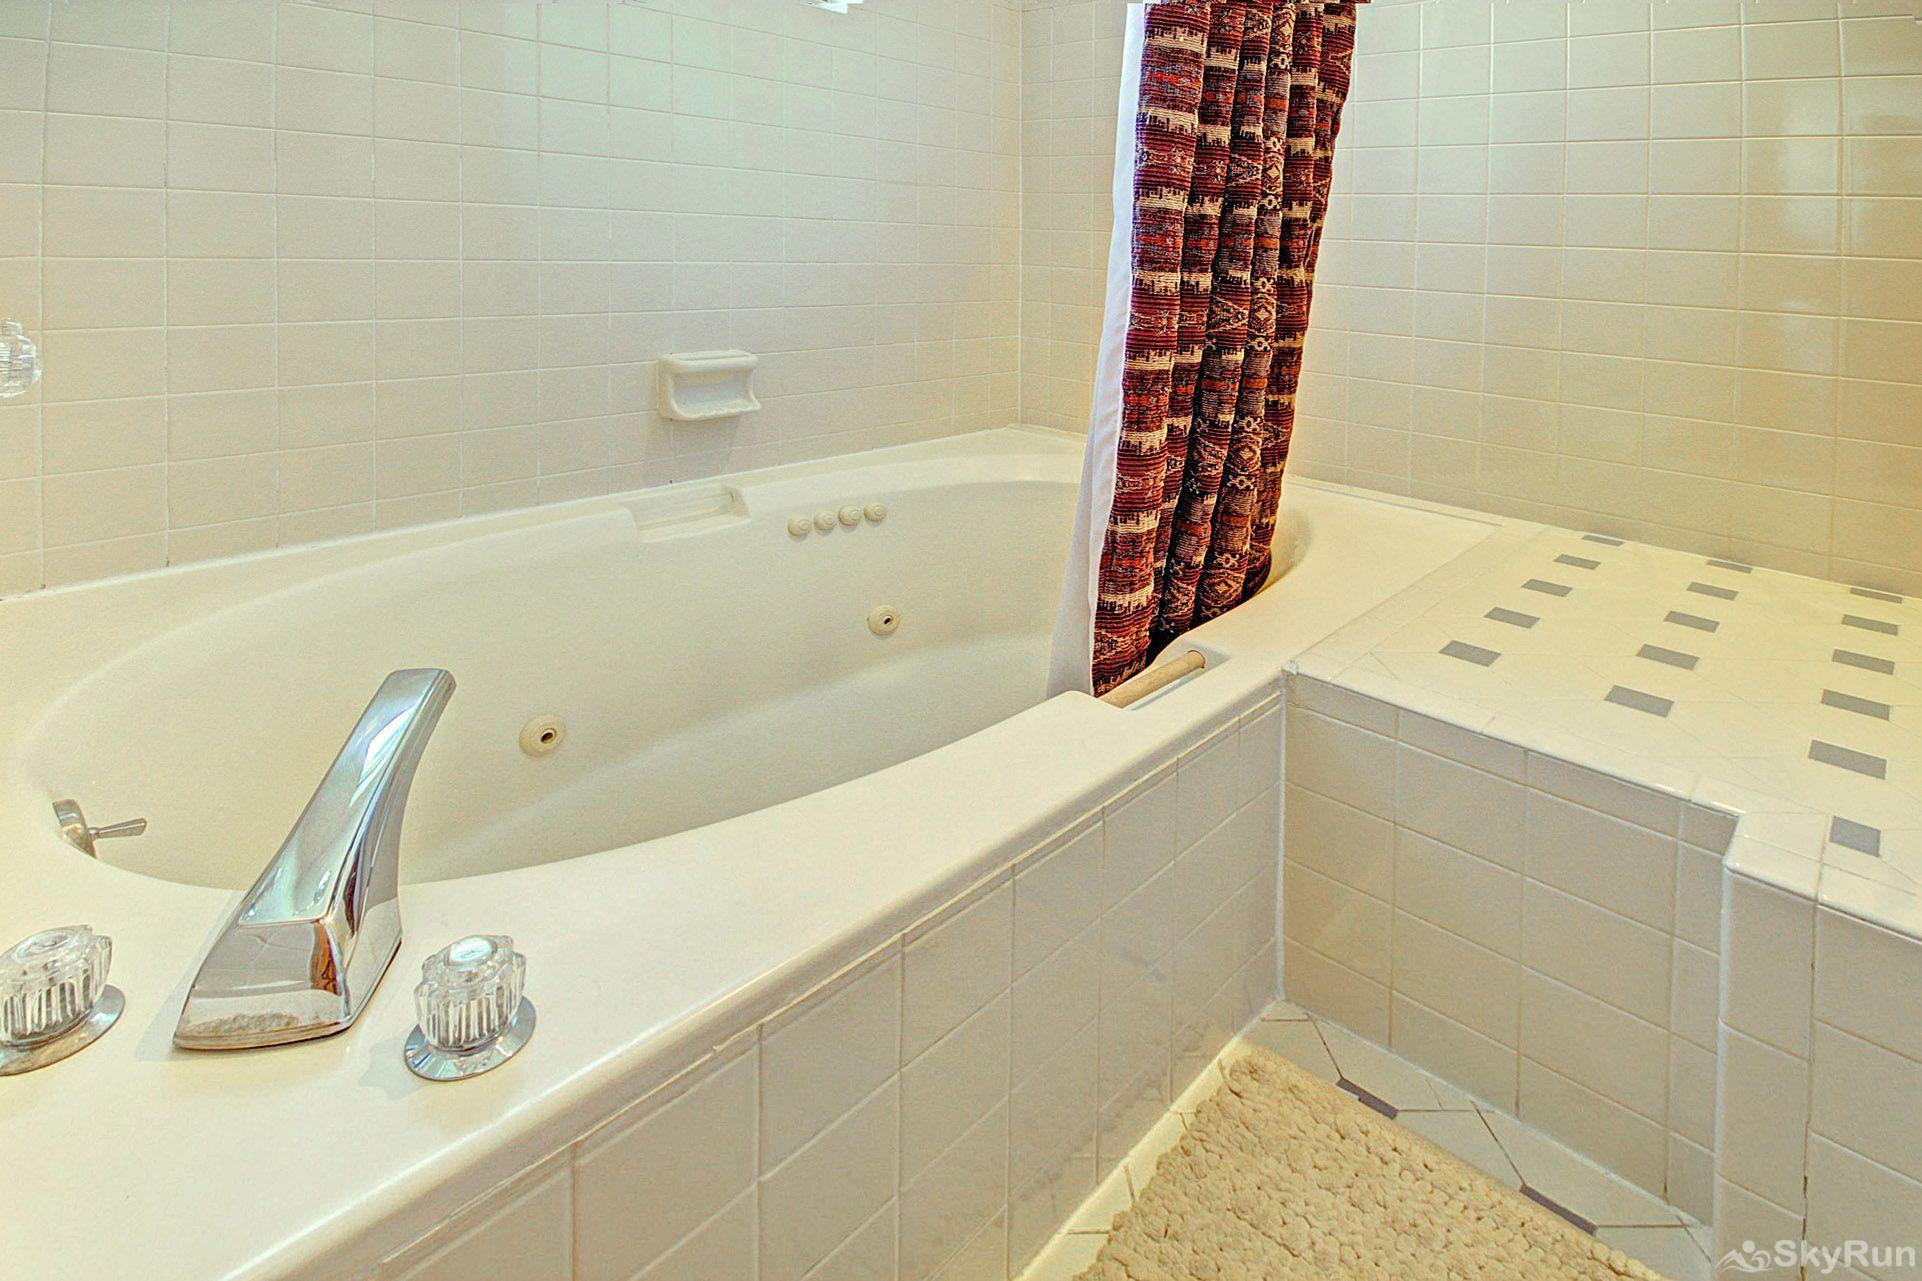 CC301 Cross Creek 2BR 2BA Jetted tub